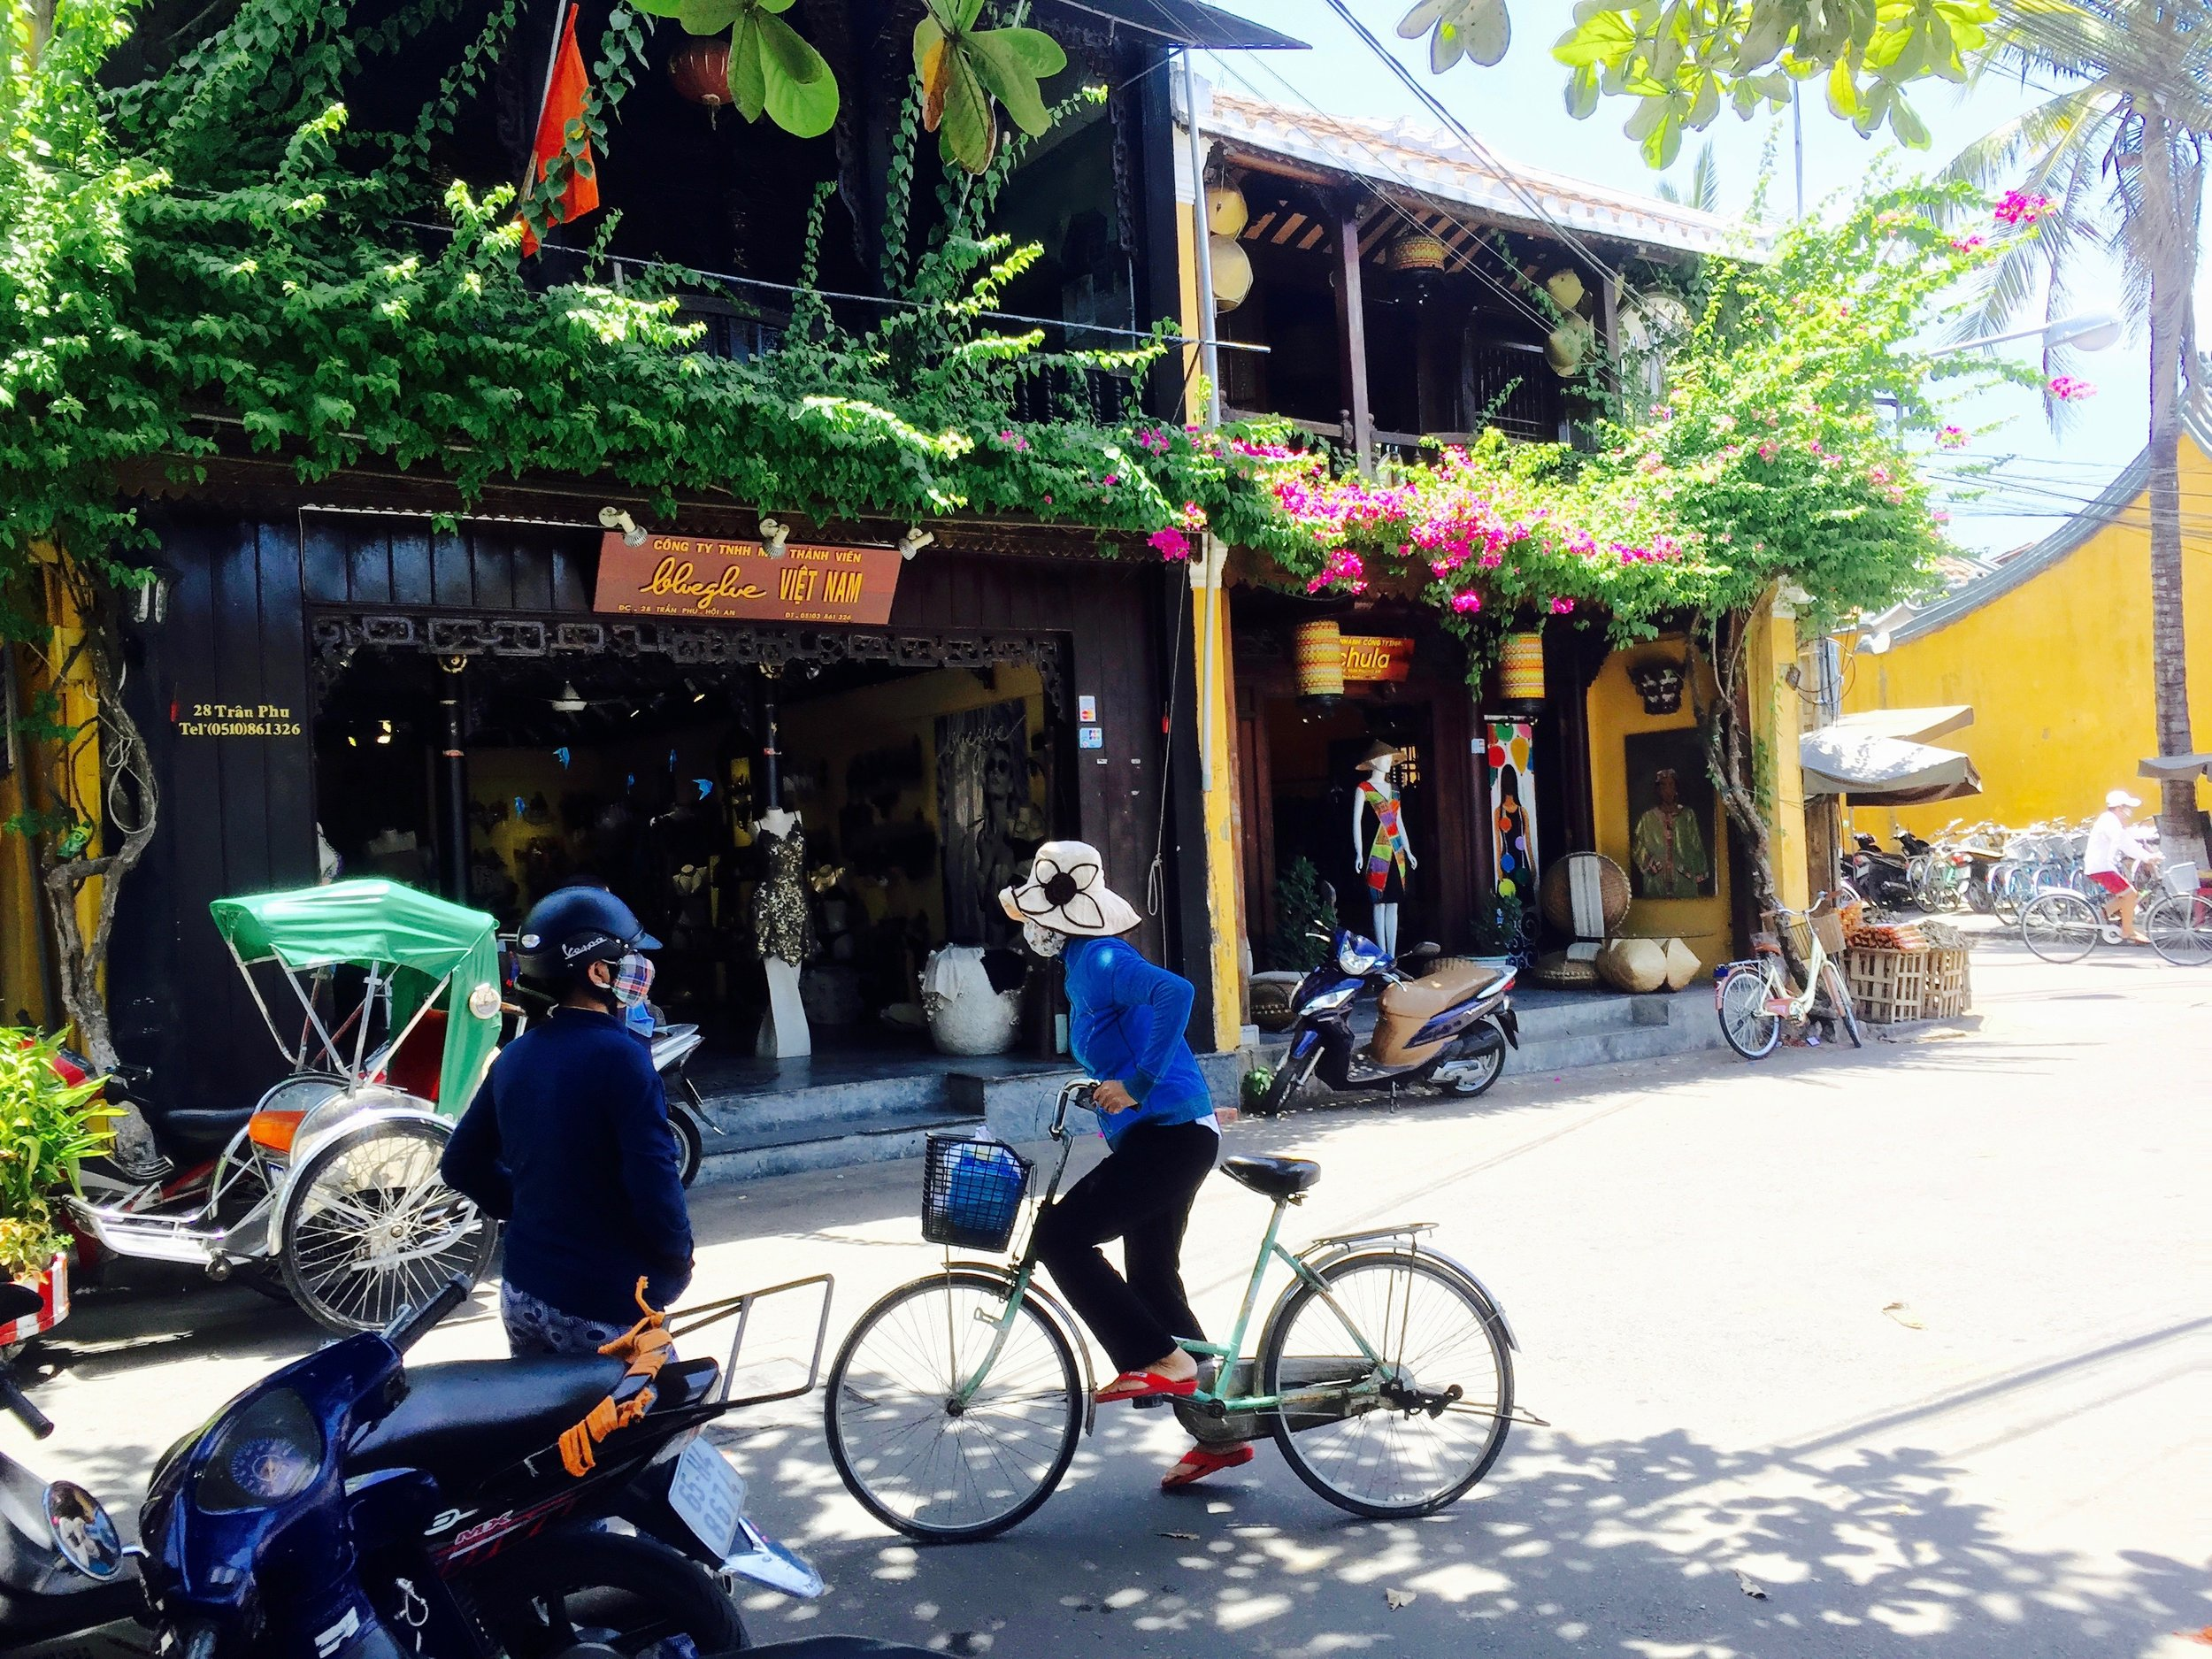 Hoi An maintains a strong sense of place, with well preserved heritage buildings complementing its natural environment.